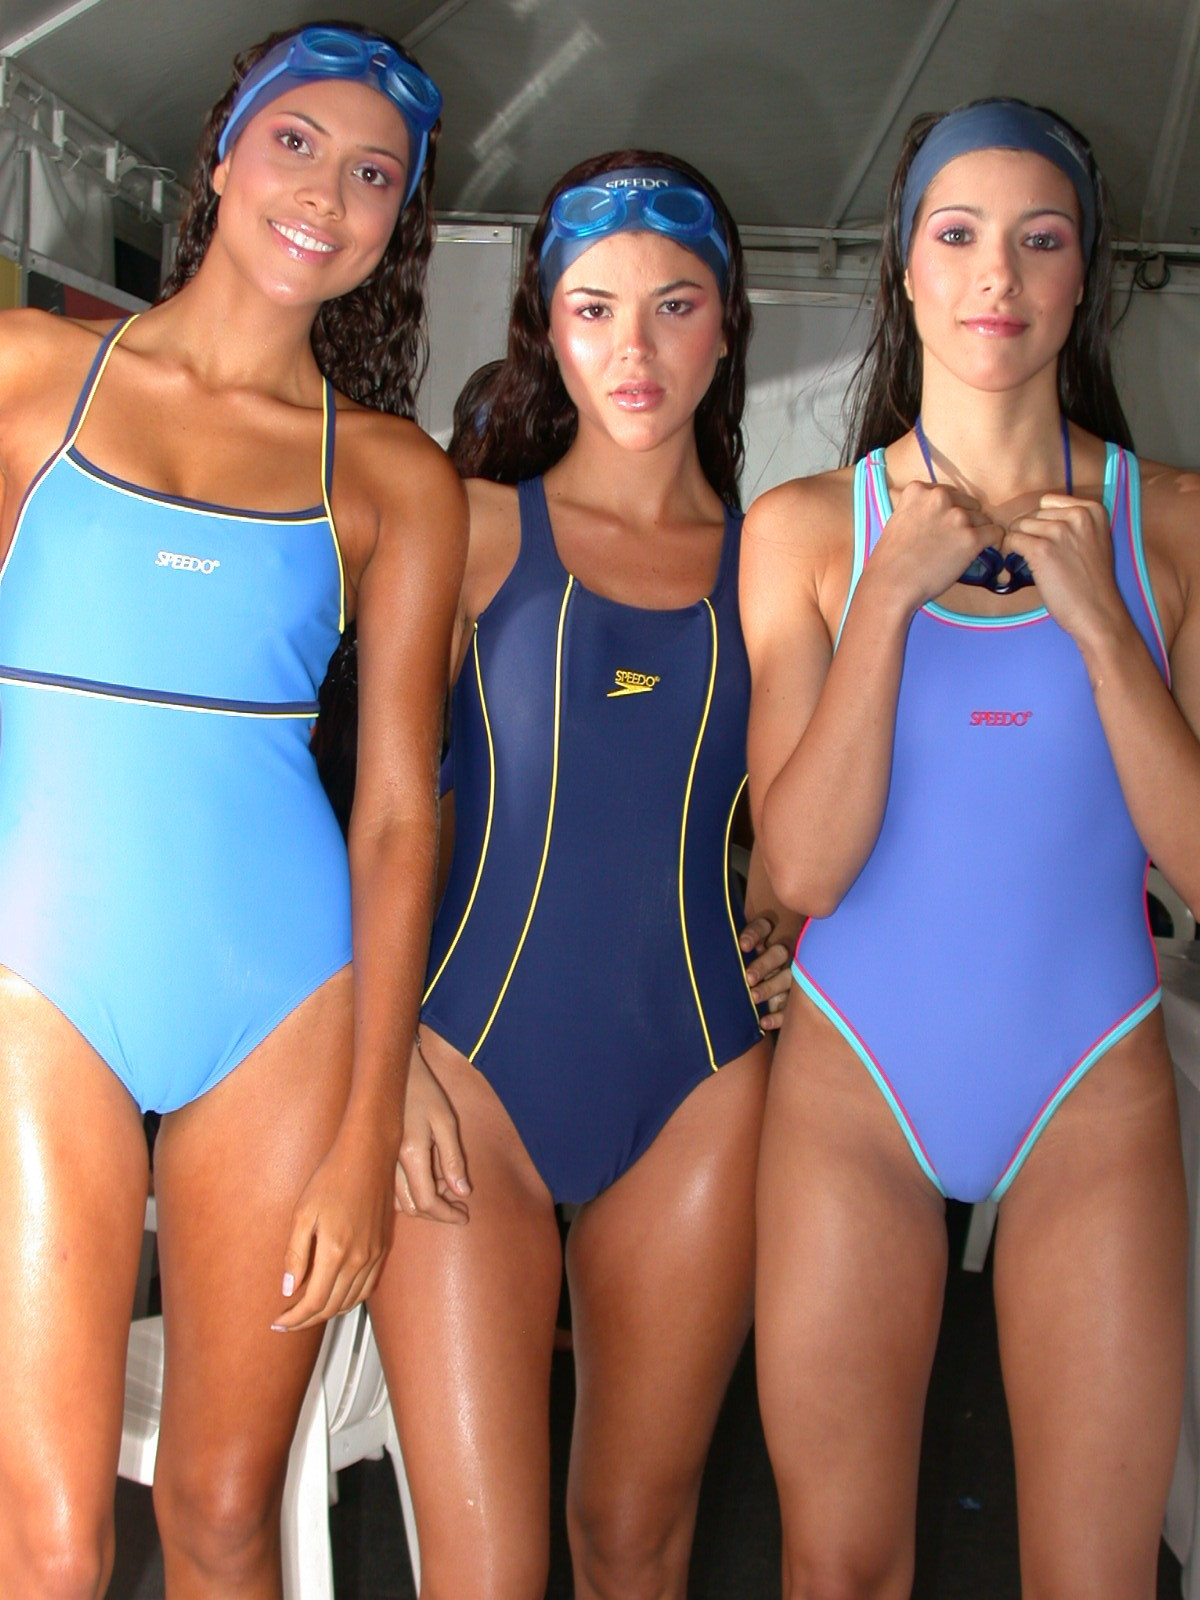 Candid young girls in swimsuits — photo 11